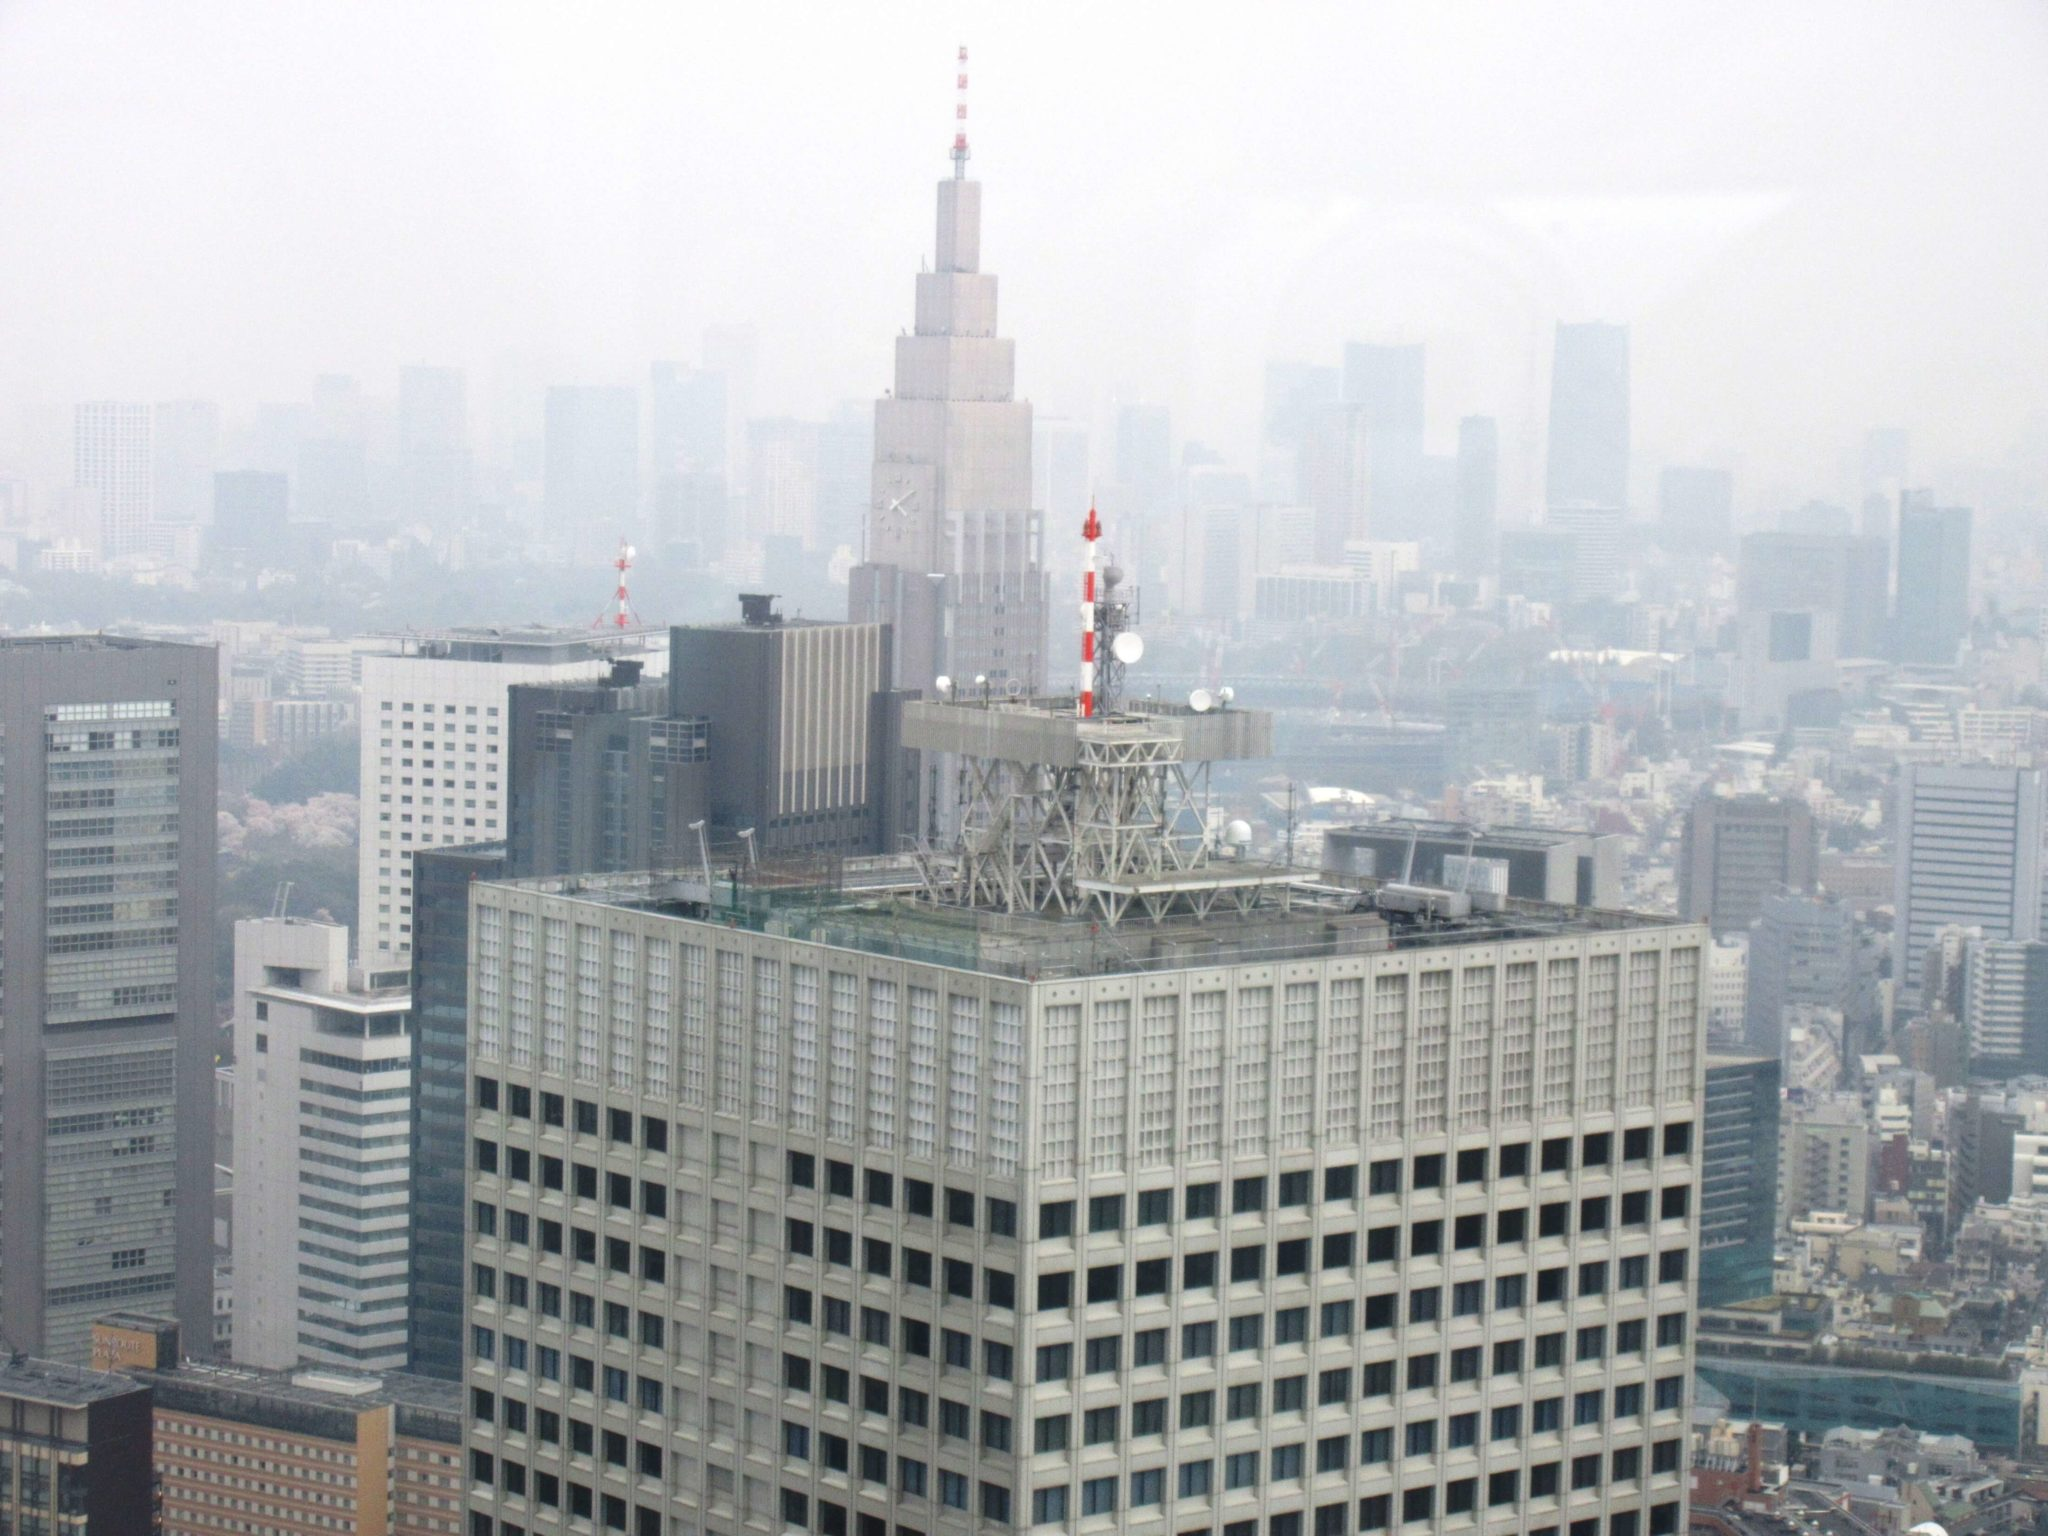 El Empire State Building en Tokio